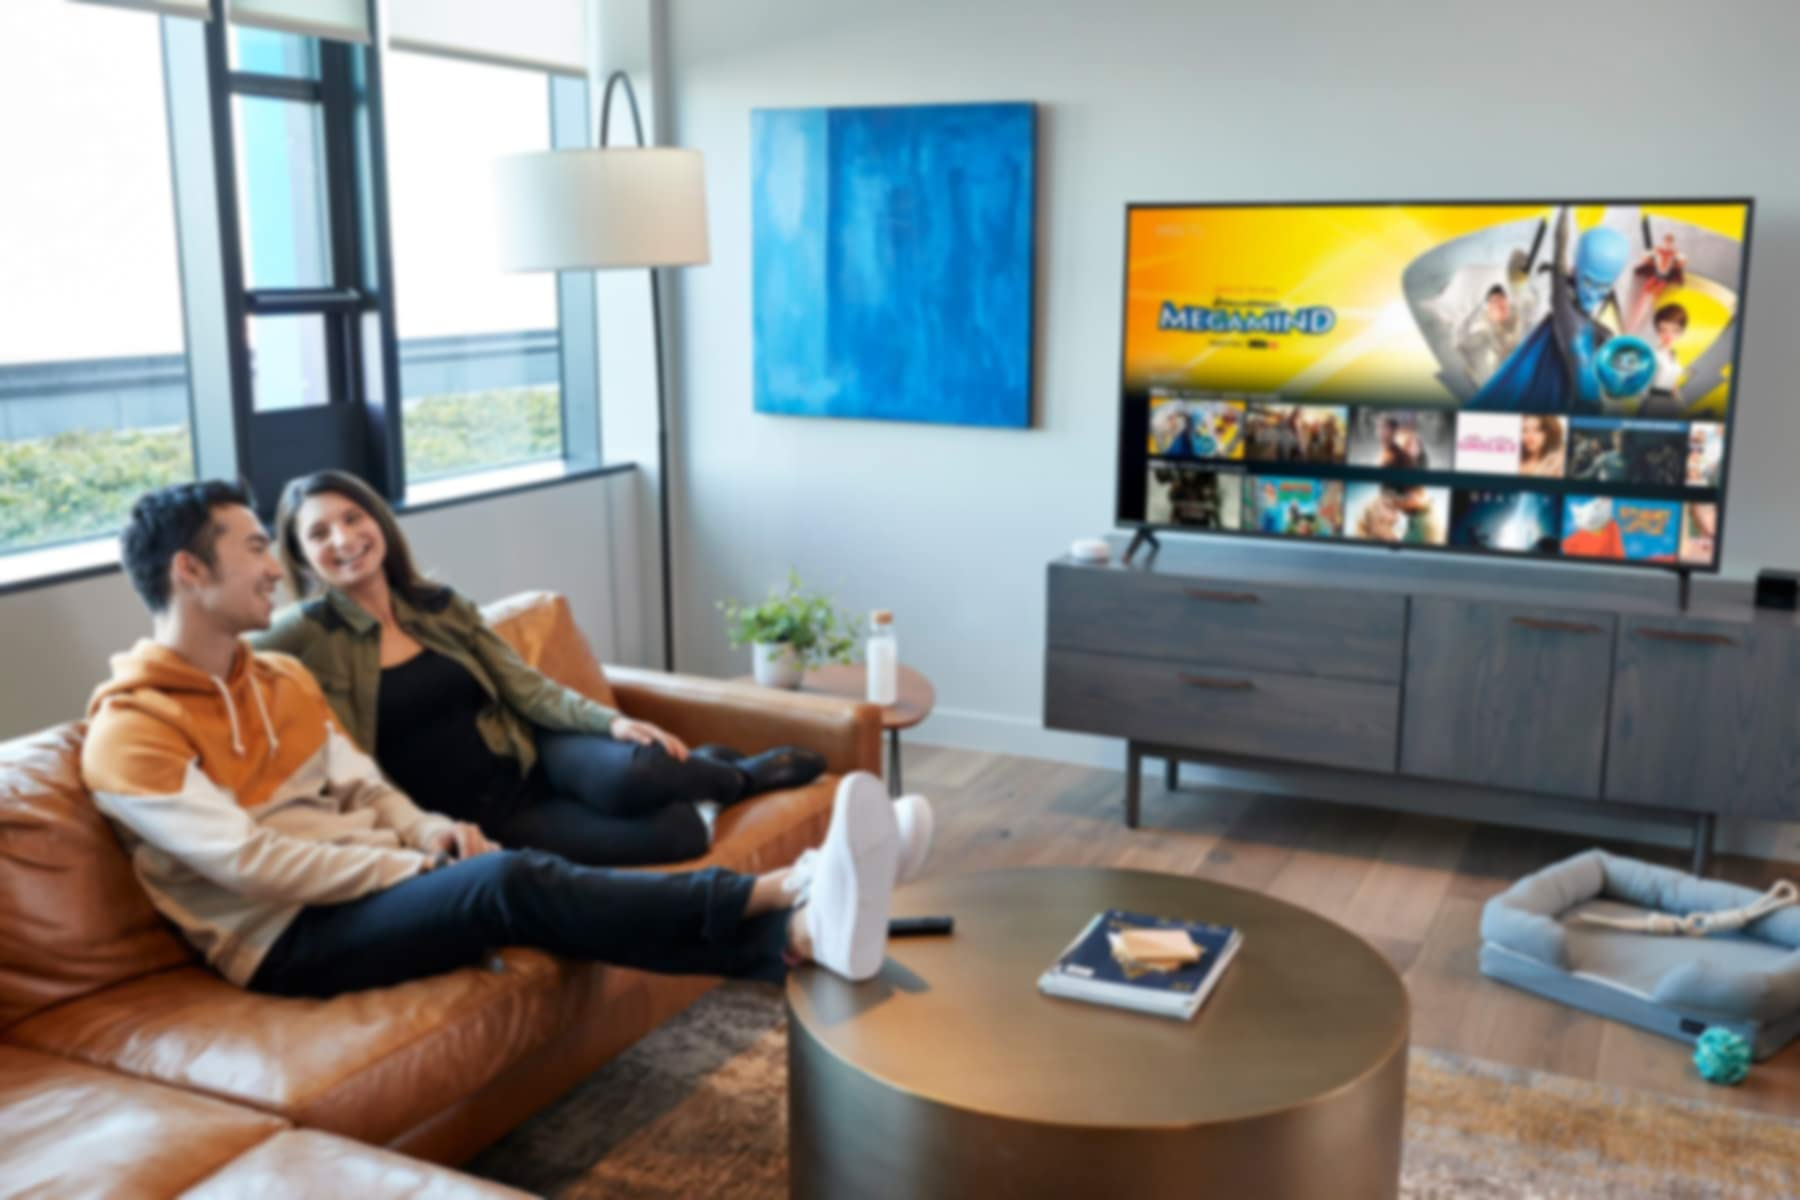 A young man and a young woman laugh together while sitting on a couch in a living room with a TV in the background, which shows a films selection screen.